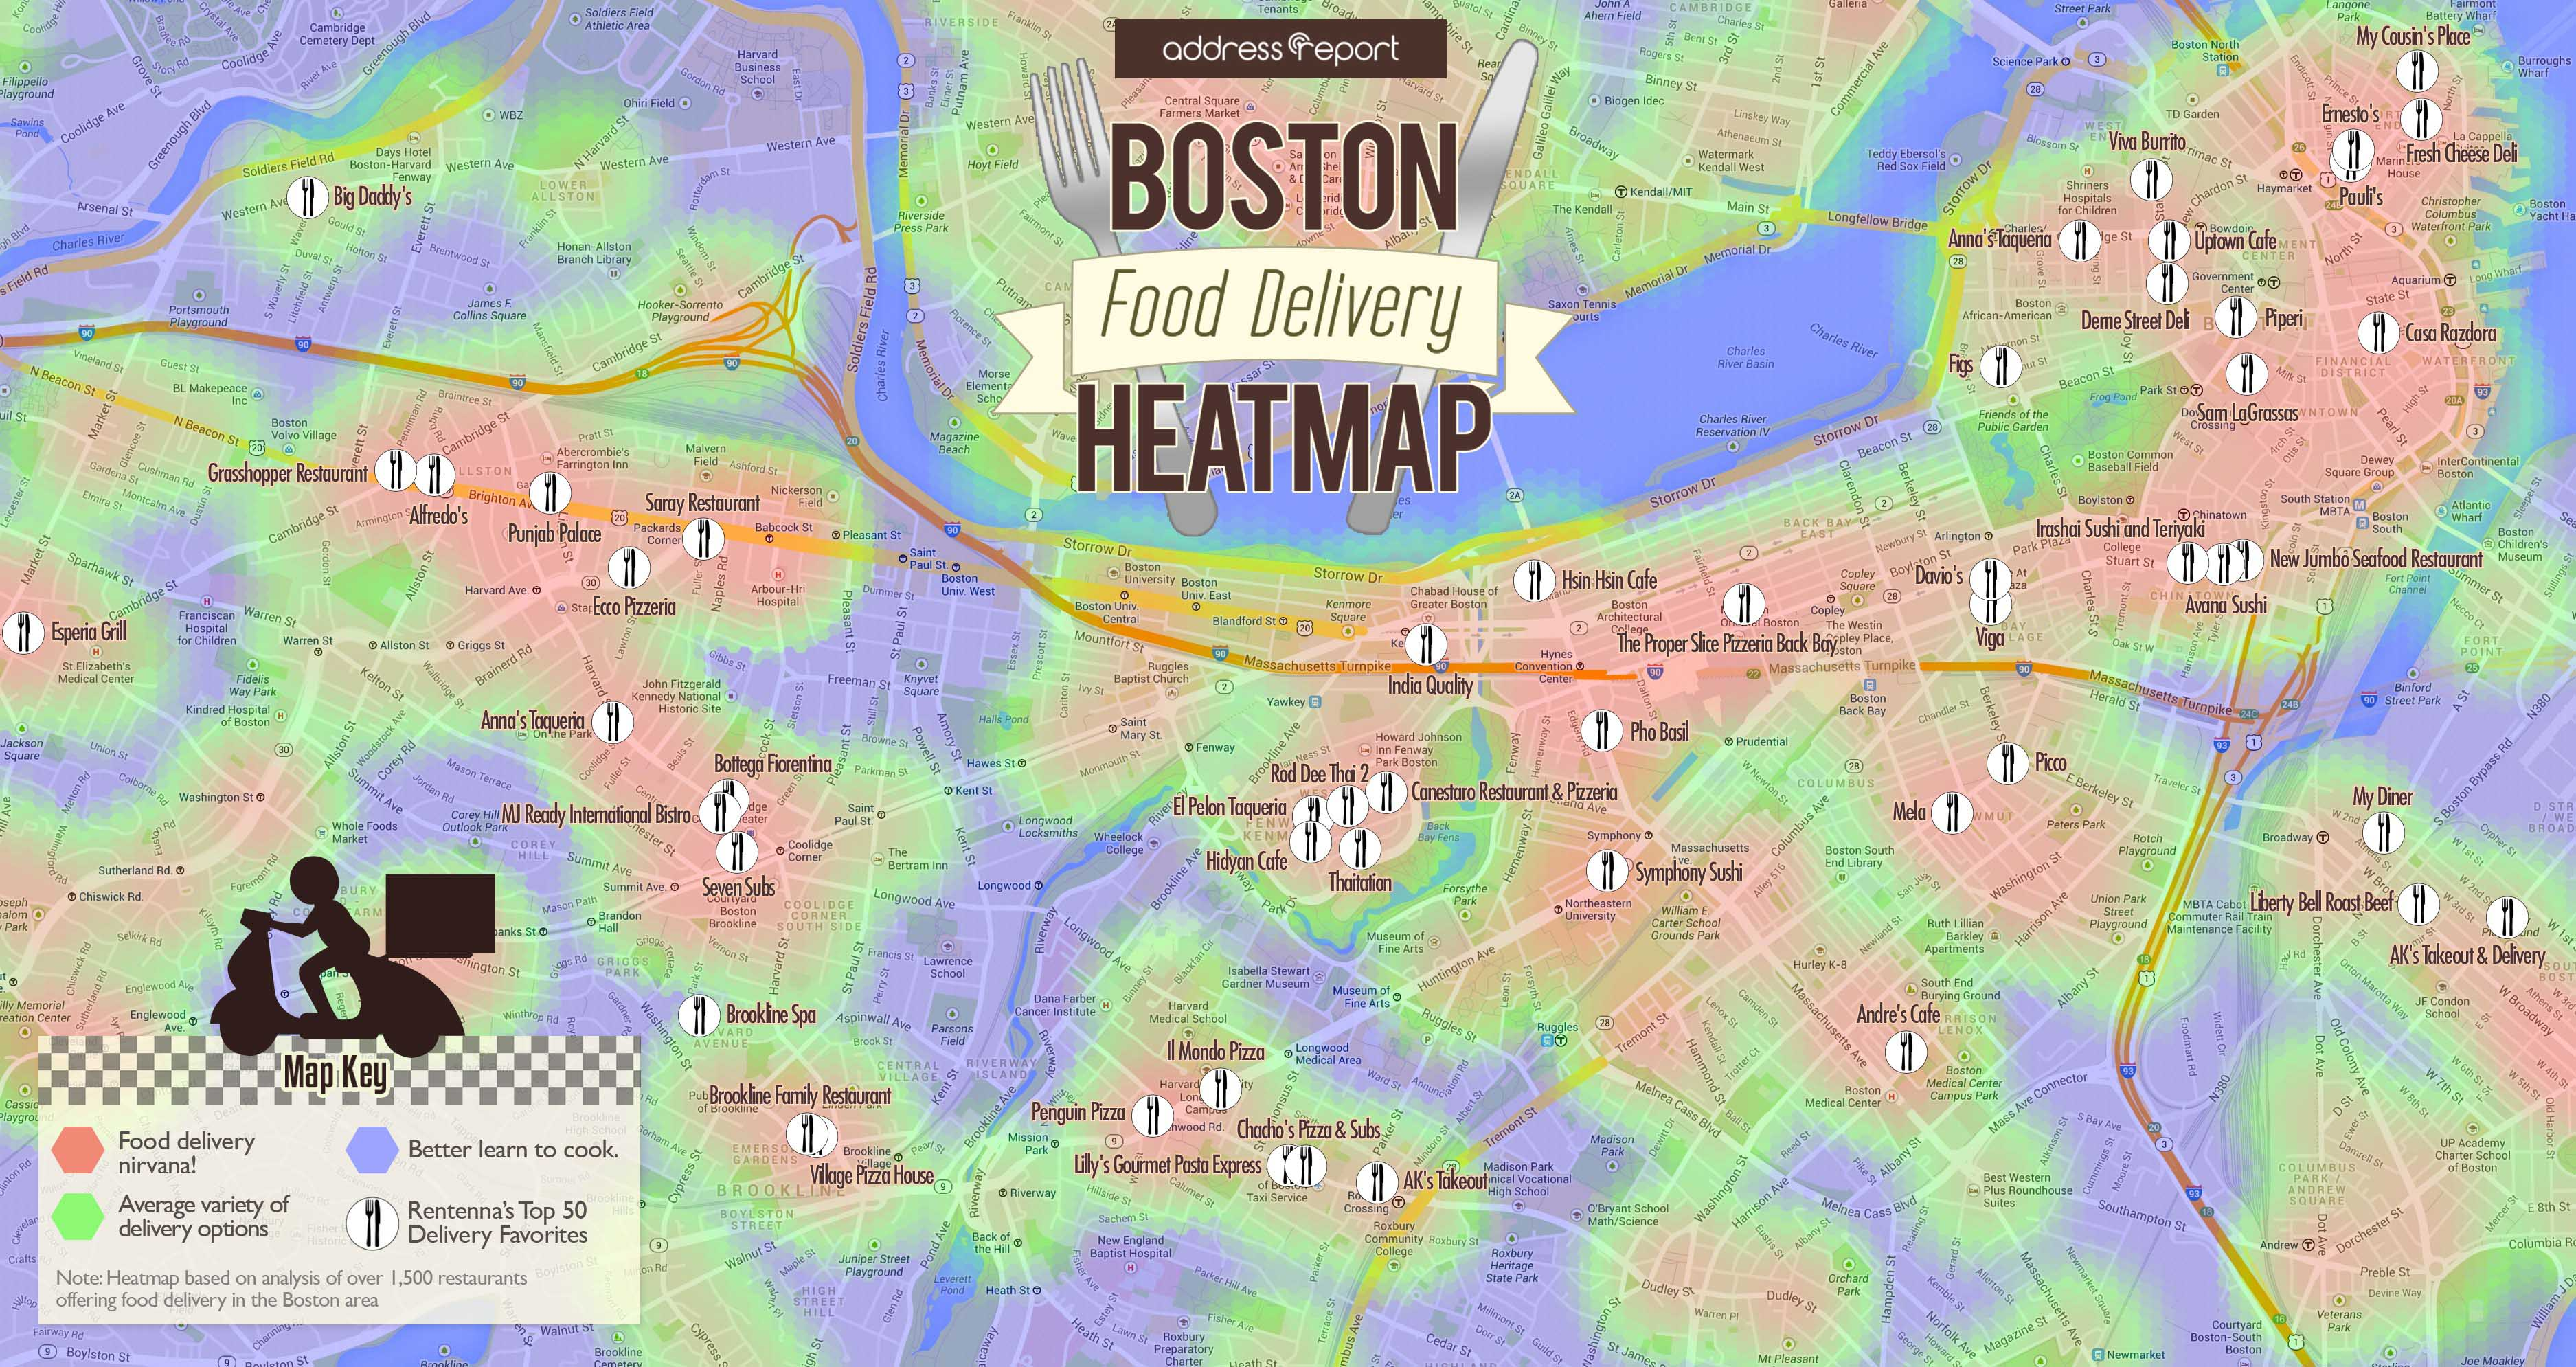 The Boston Food Delivery Heatmap Where To Live If You Love To Order - Boston neighborhood map